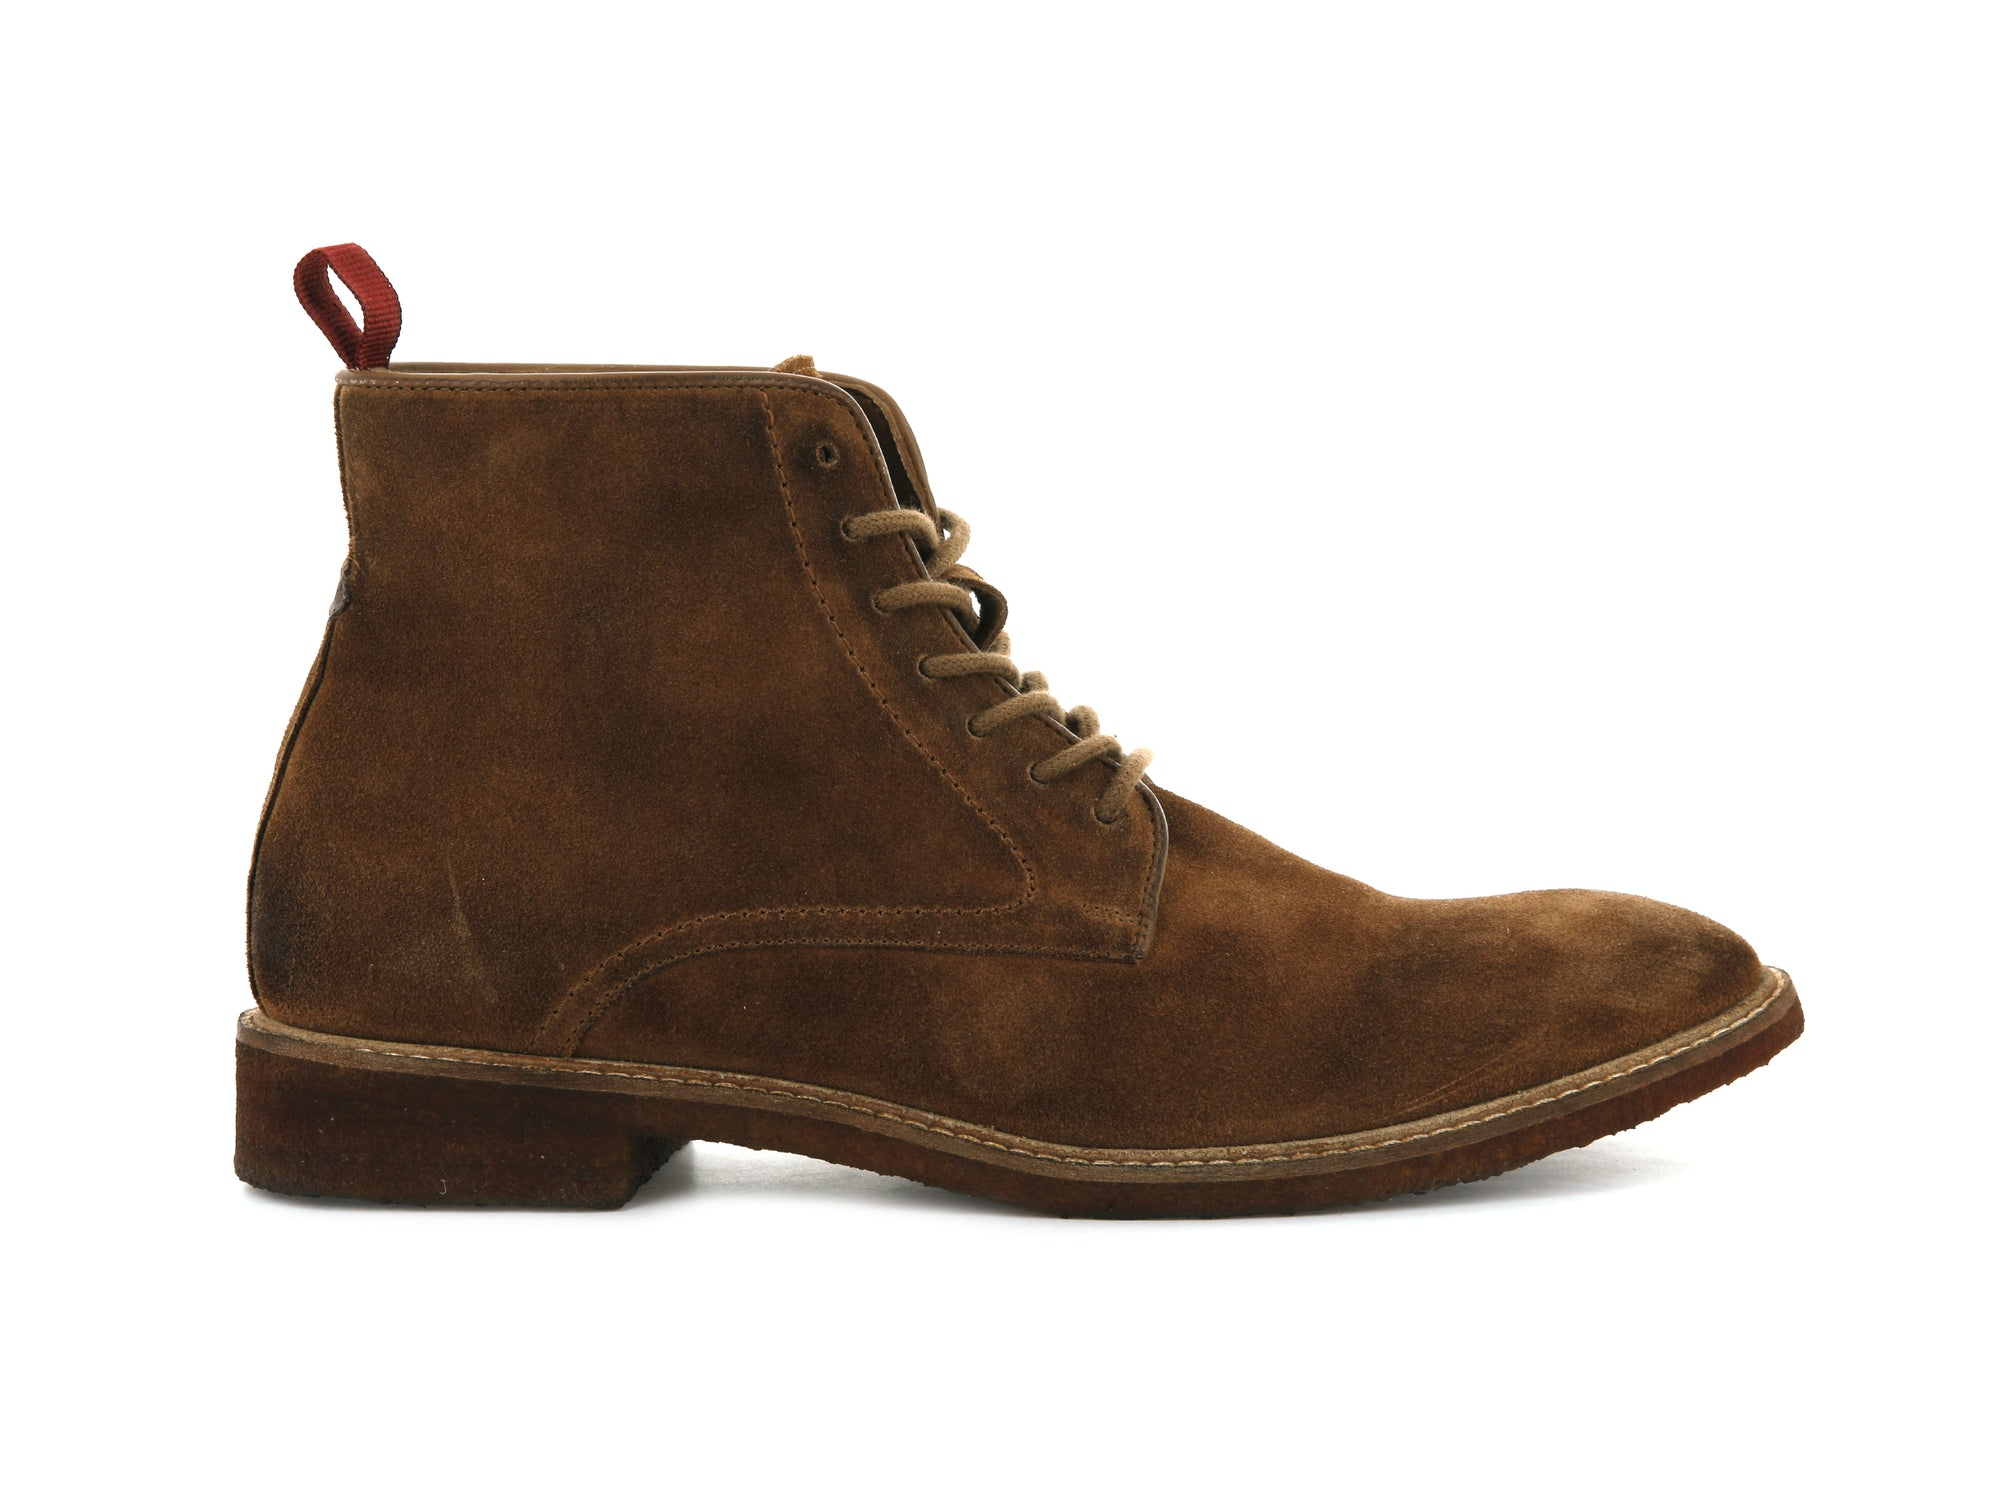 76282_198 | Bottines homme ANNIBAL SUD | TOBACCO